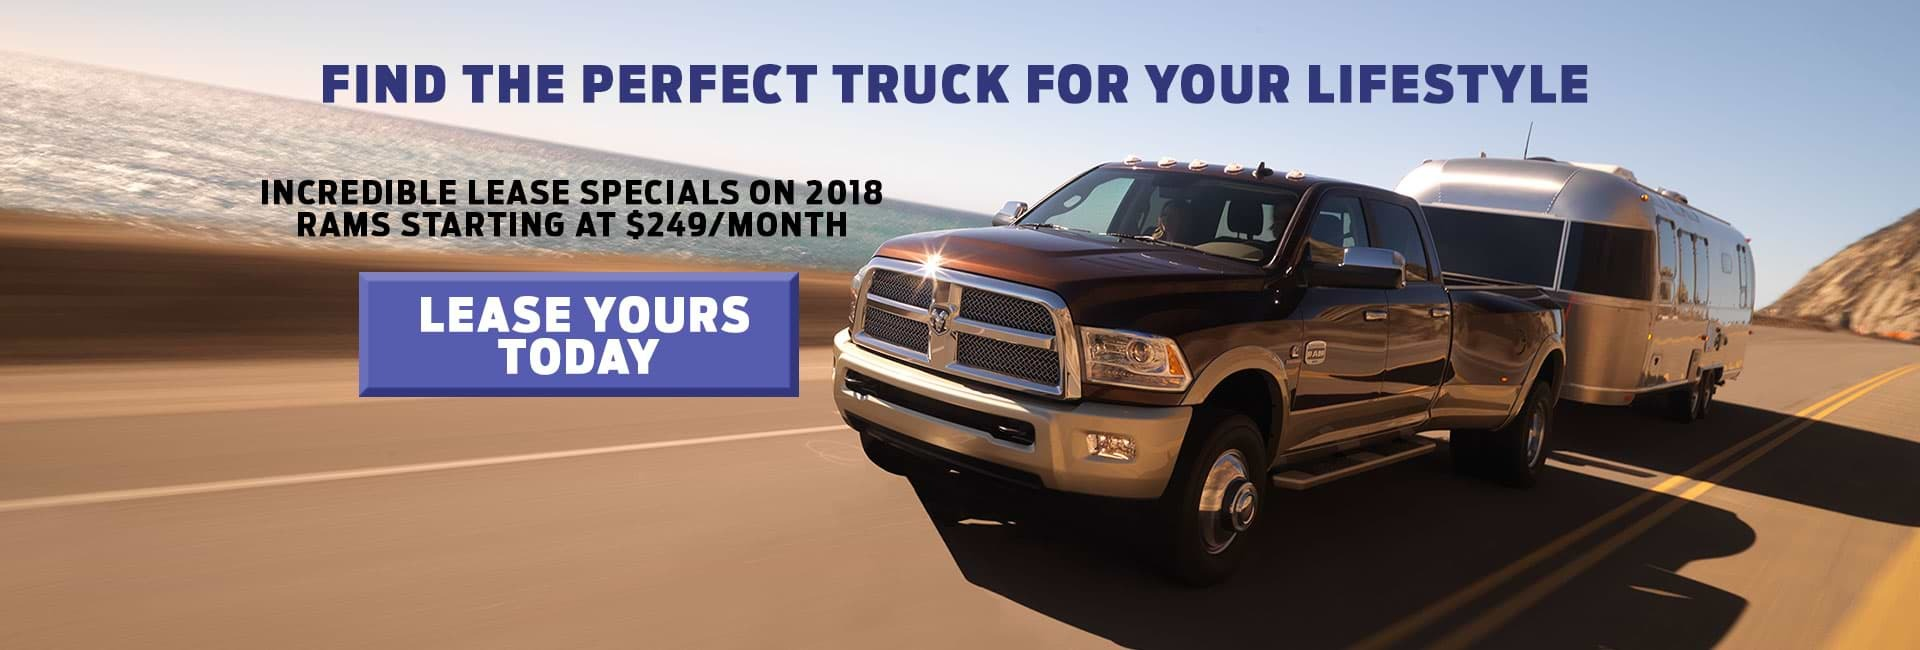 Find the perfect truck for your lifestyle